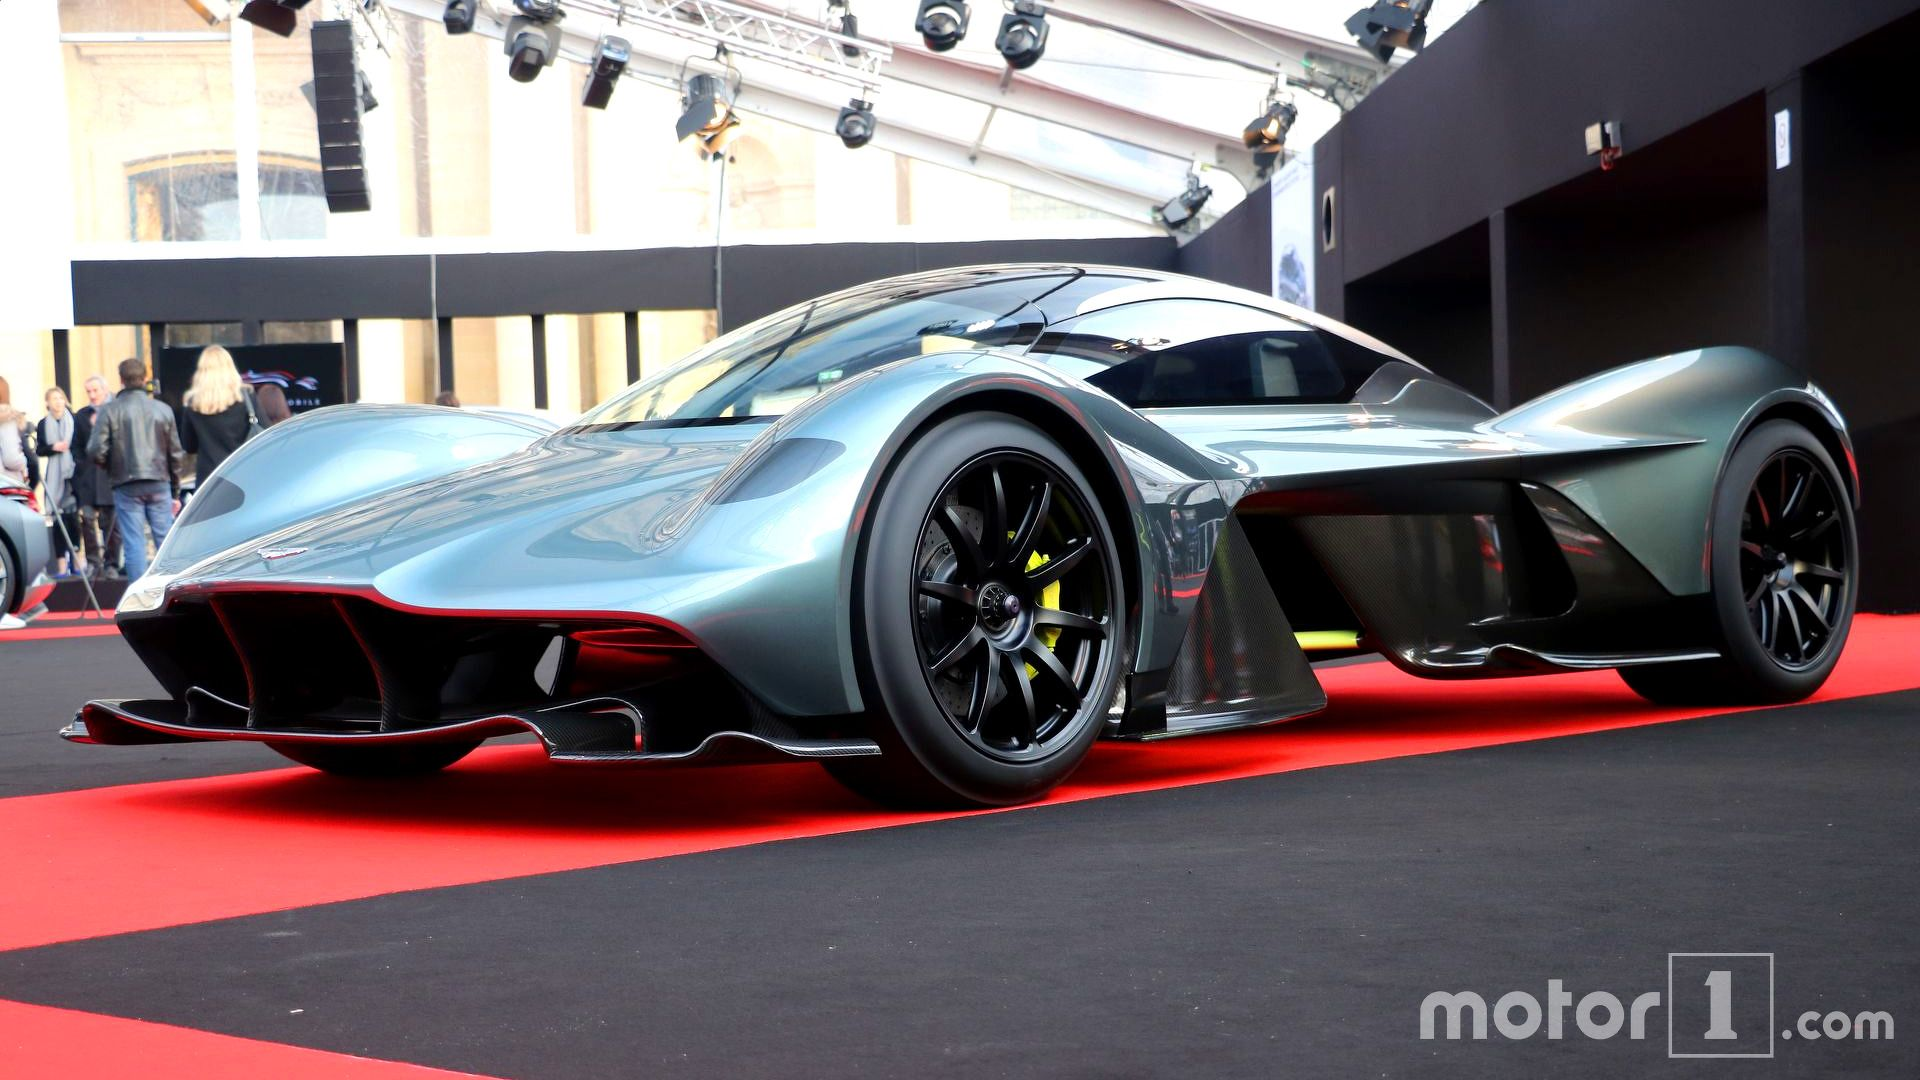 The New Aston Martin Am Rb 001 Hypercar Made Its Public Debut In